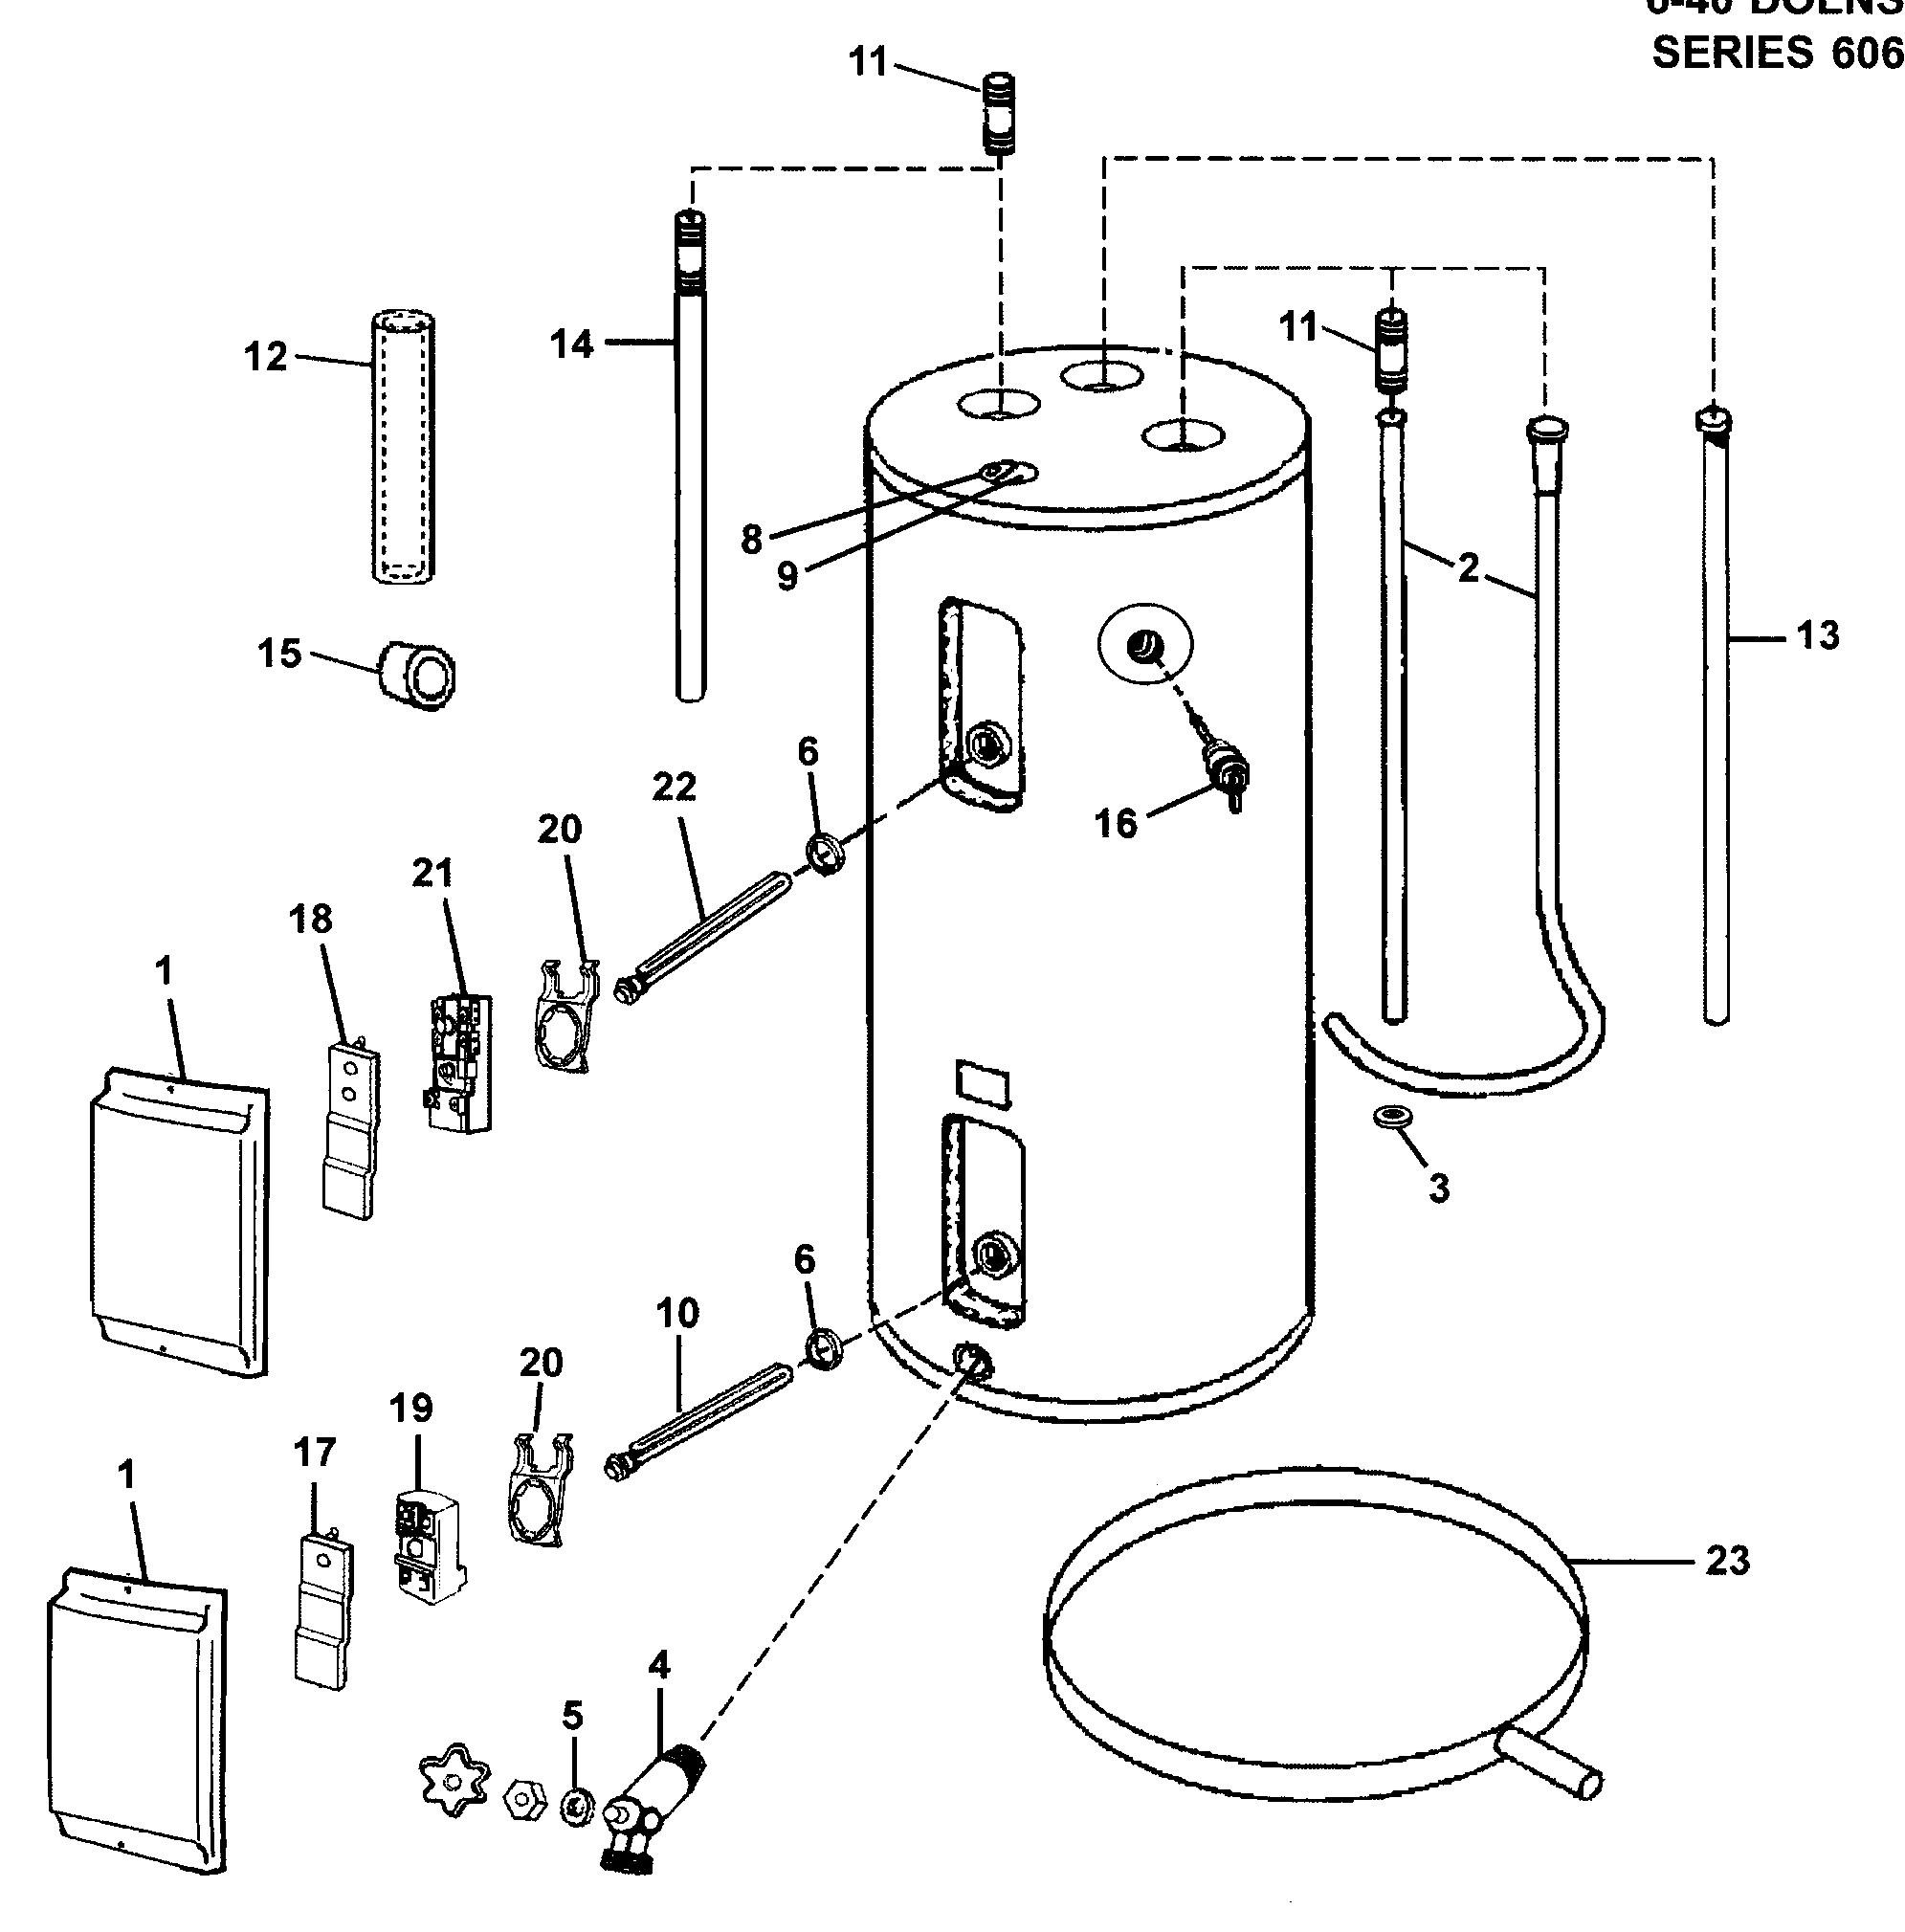 hight resolution of hot water heater wiring diagram wiring diagram electric water heater new electric water heater parts